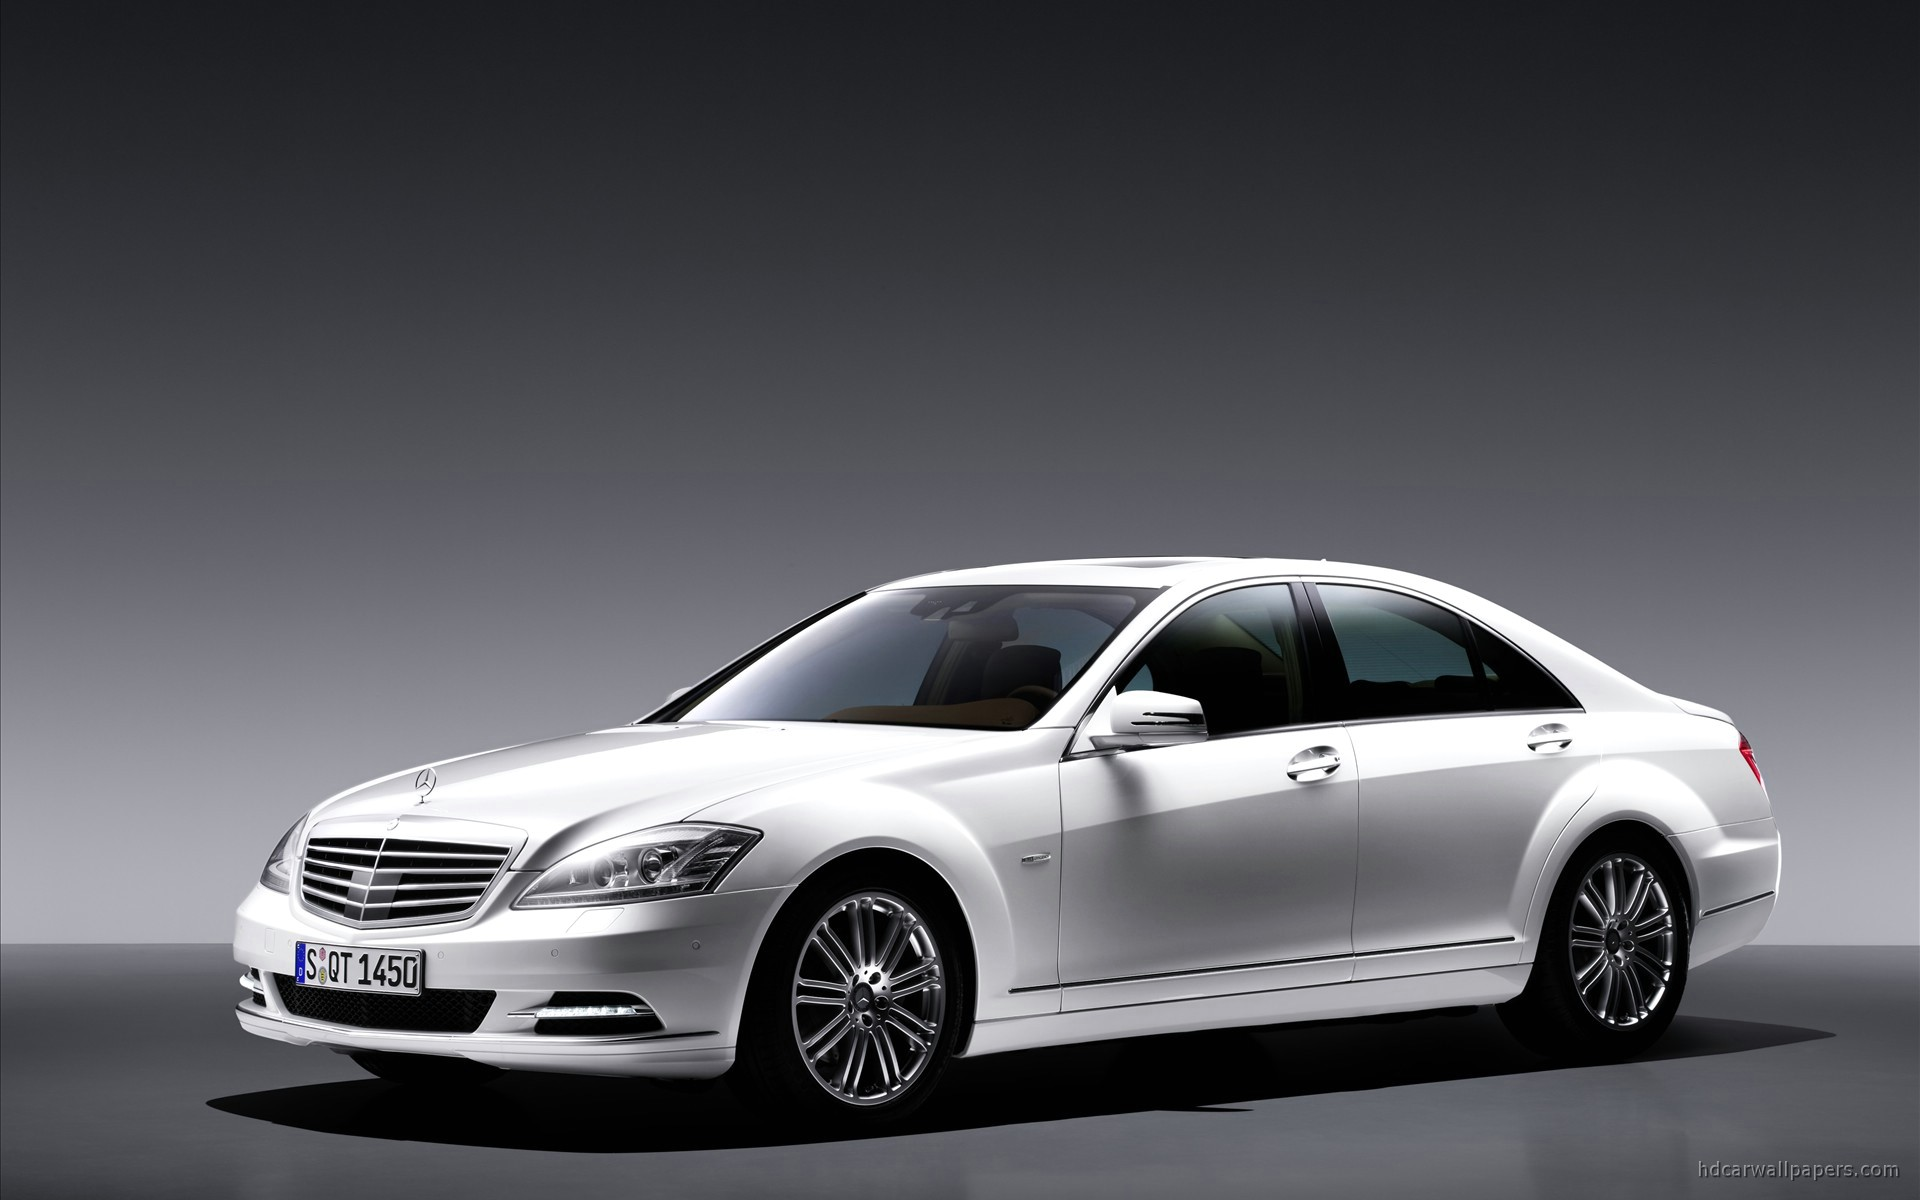 2010 mercedes benz s class wallpaper hd car wallpapers. Black Bedroom Furniture Sets. Home Design Ideas